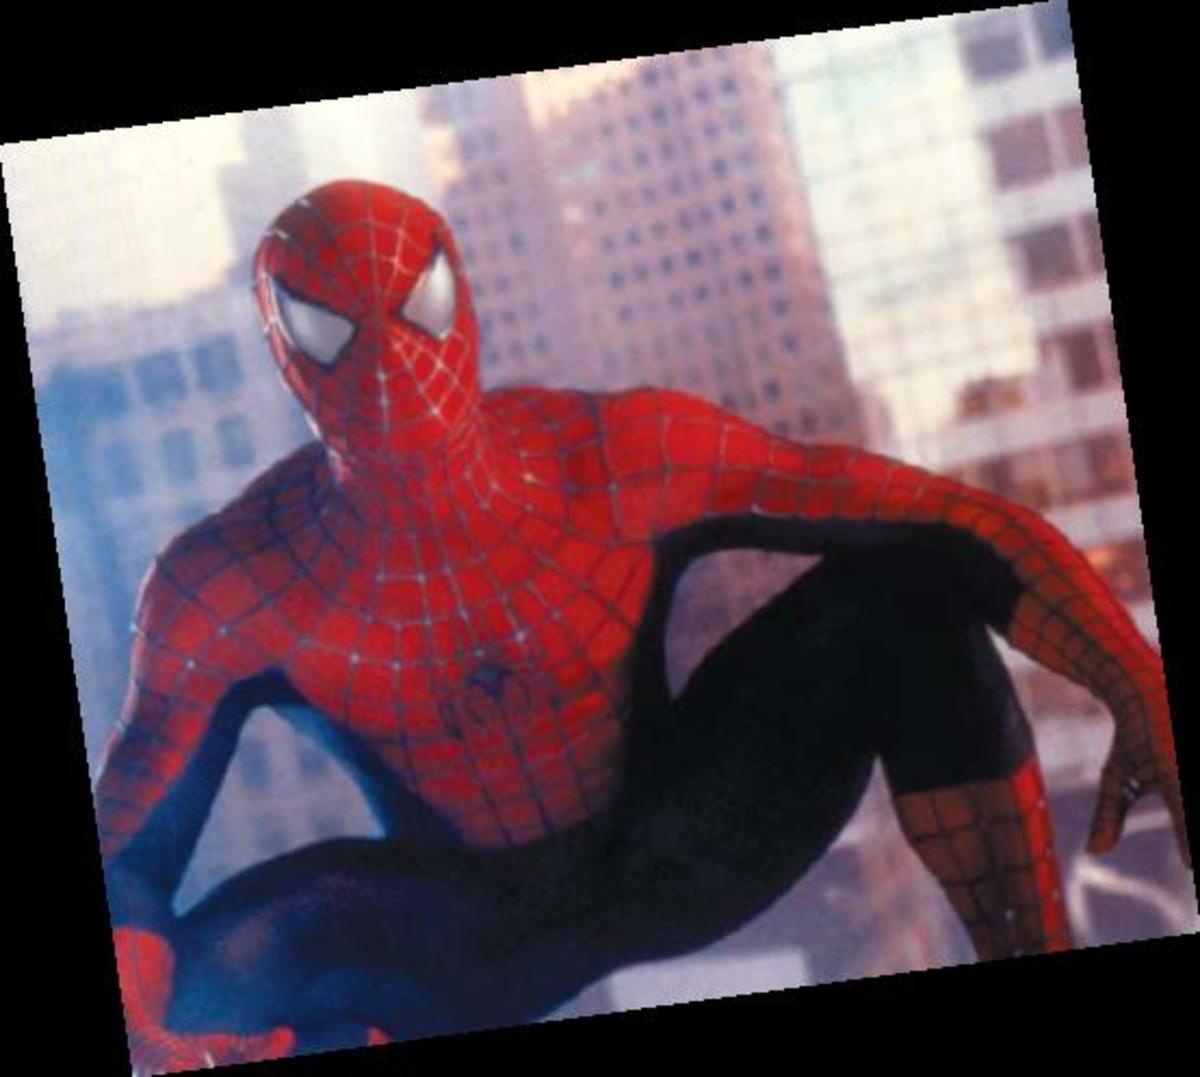 SUPER-HERO, SUPER-CHANGE: The Evolution of the Spider-Man Characters | Script Magazine #scriptchat #screenwriting